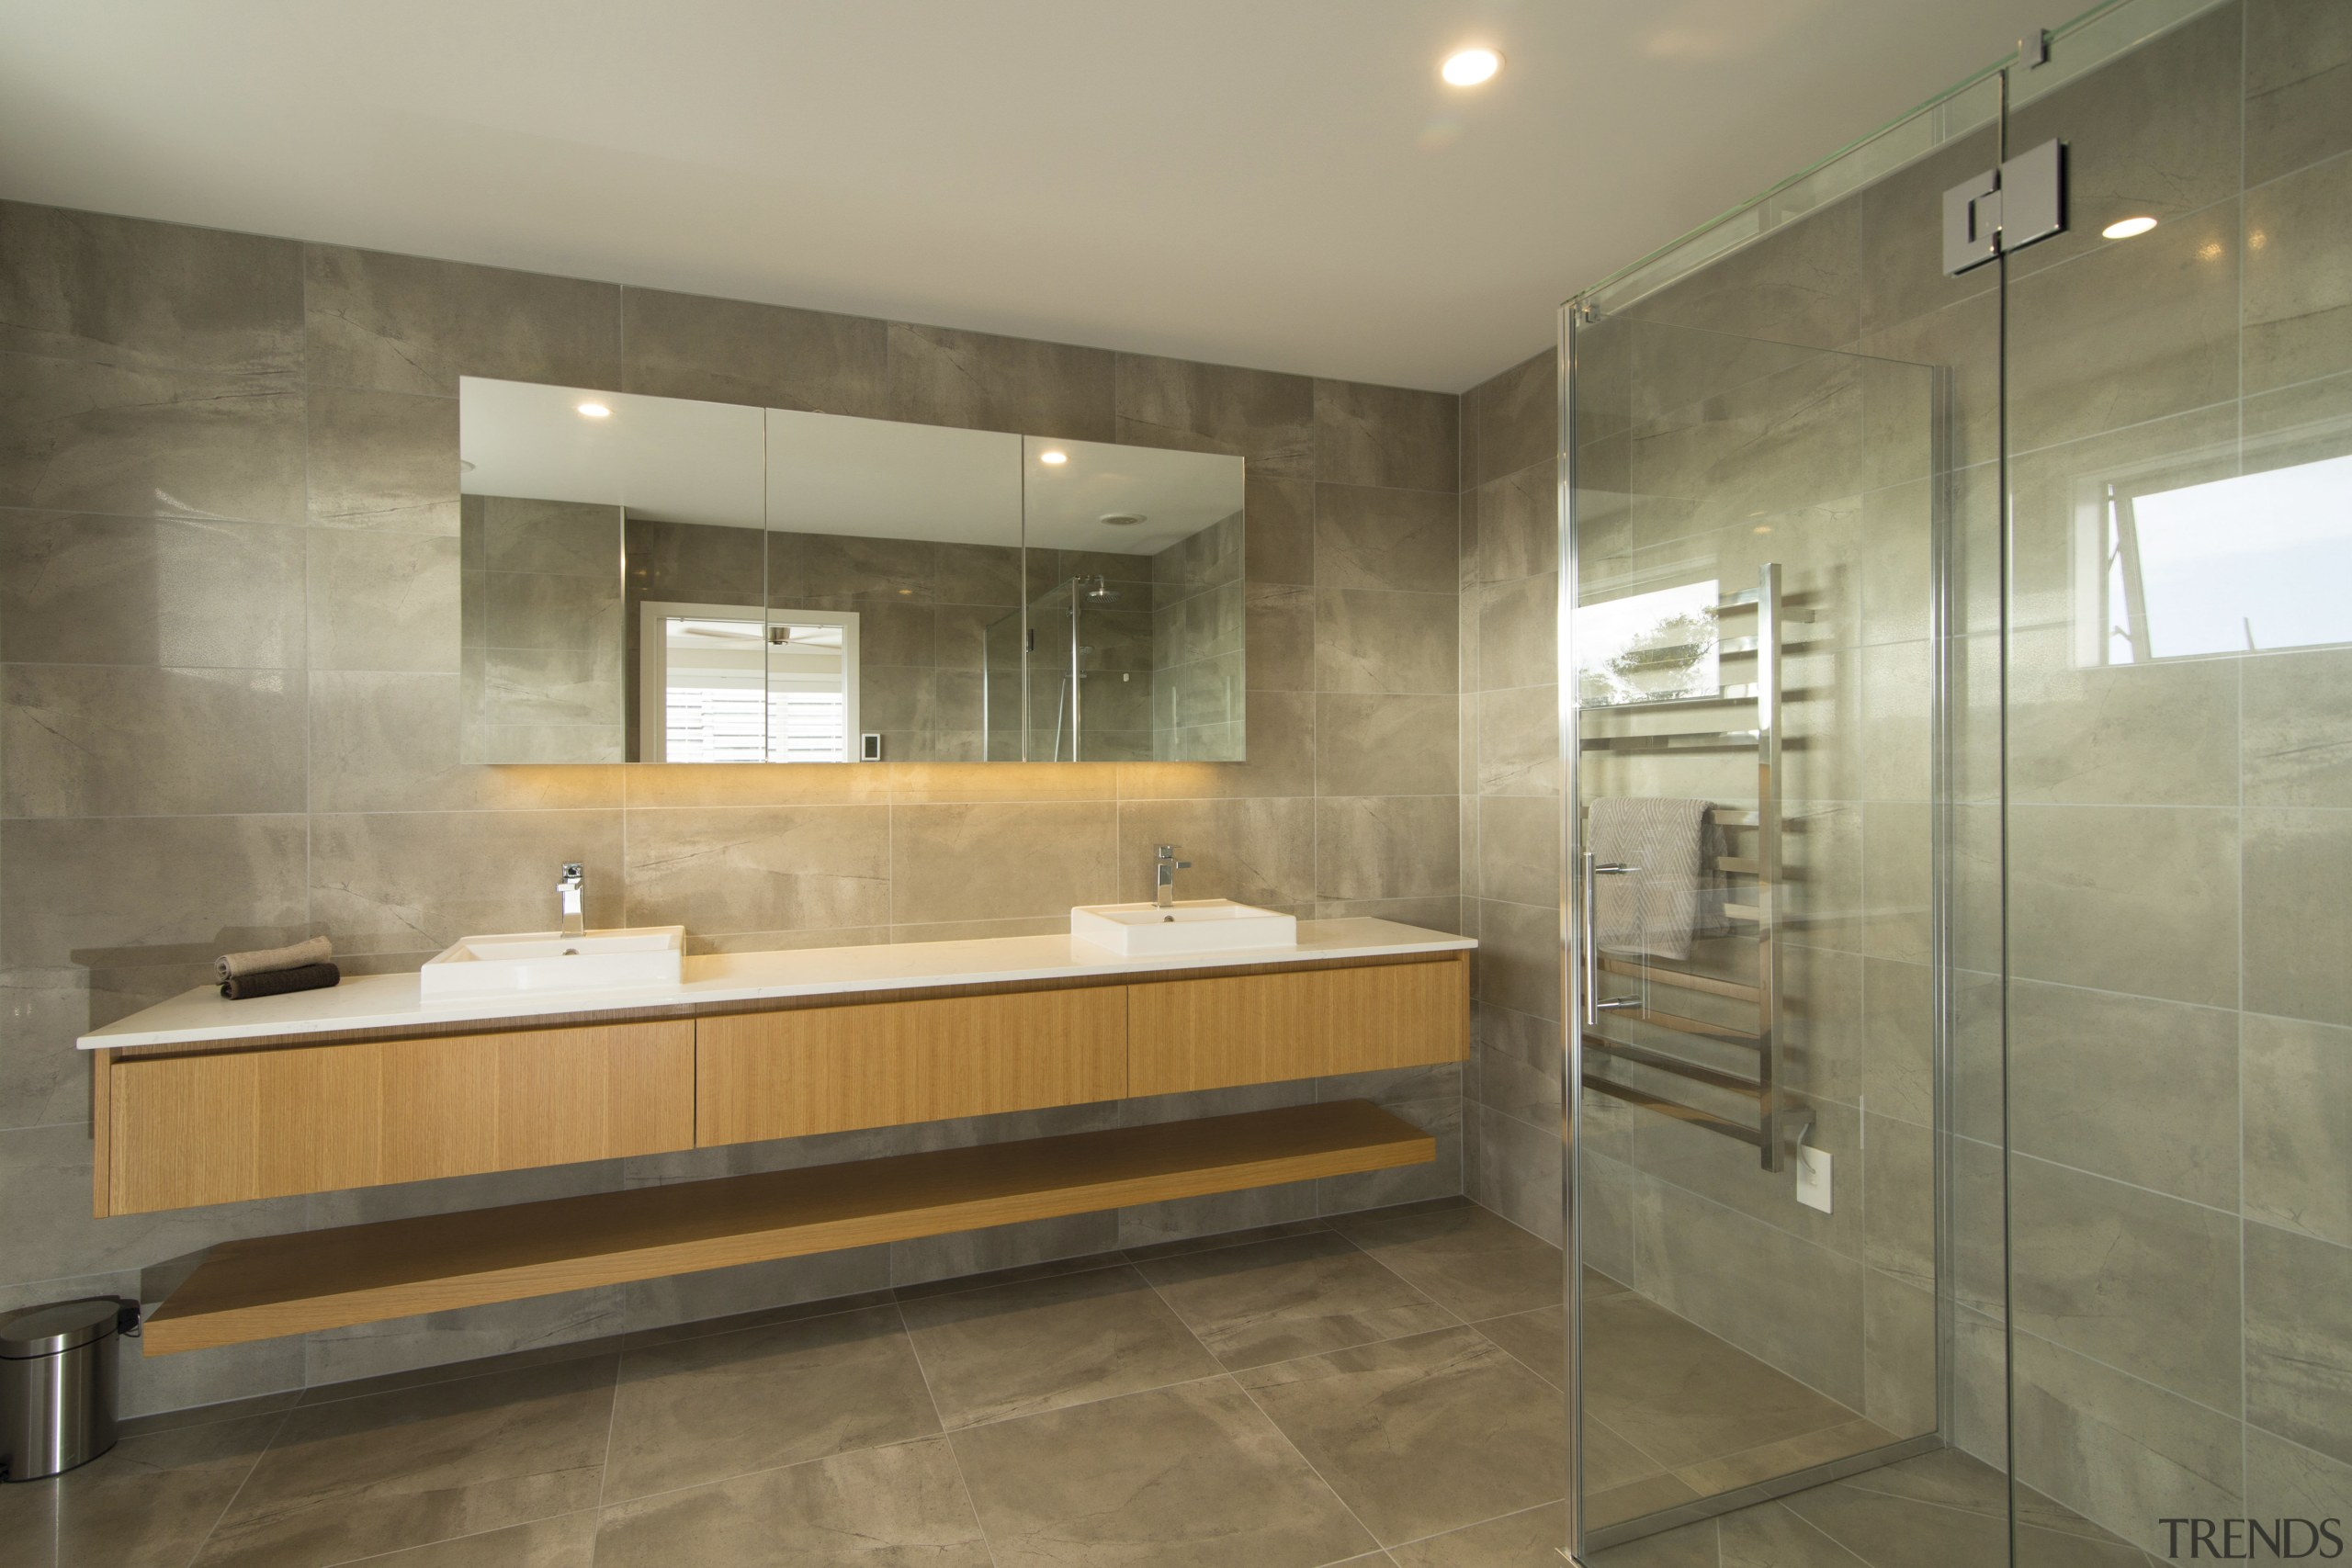 The use of large floor-to-ceiling tiles creates a bathroom, floor, flooring, interior design, real estate, room, tile, brown, orange